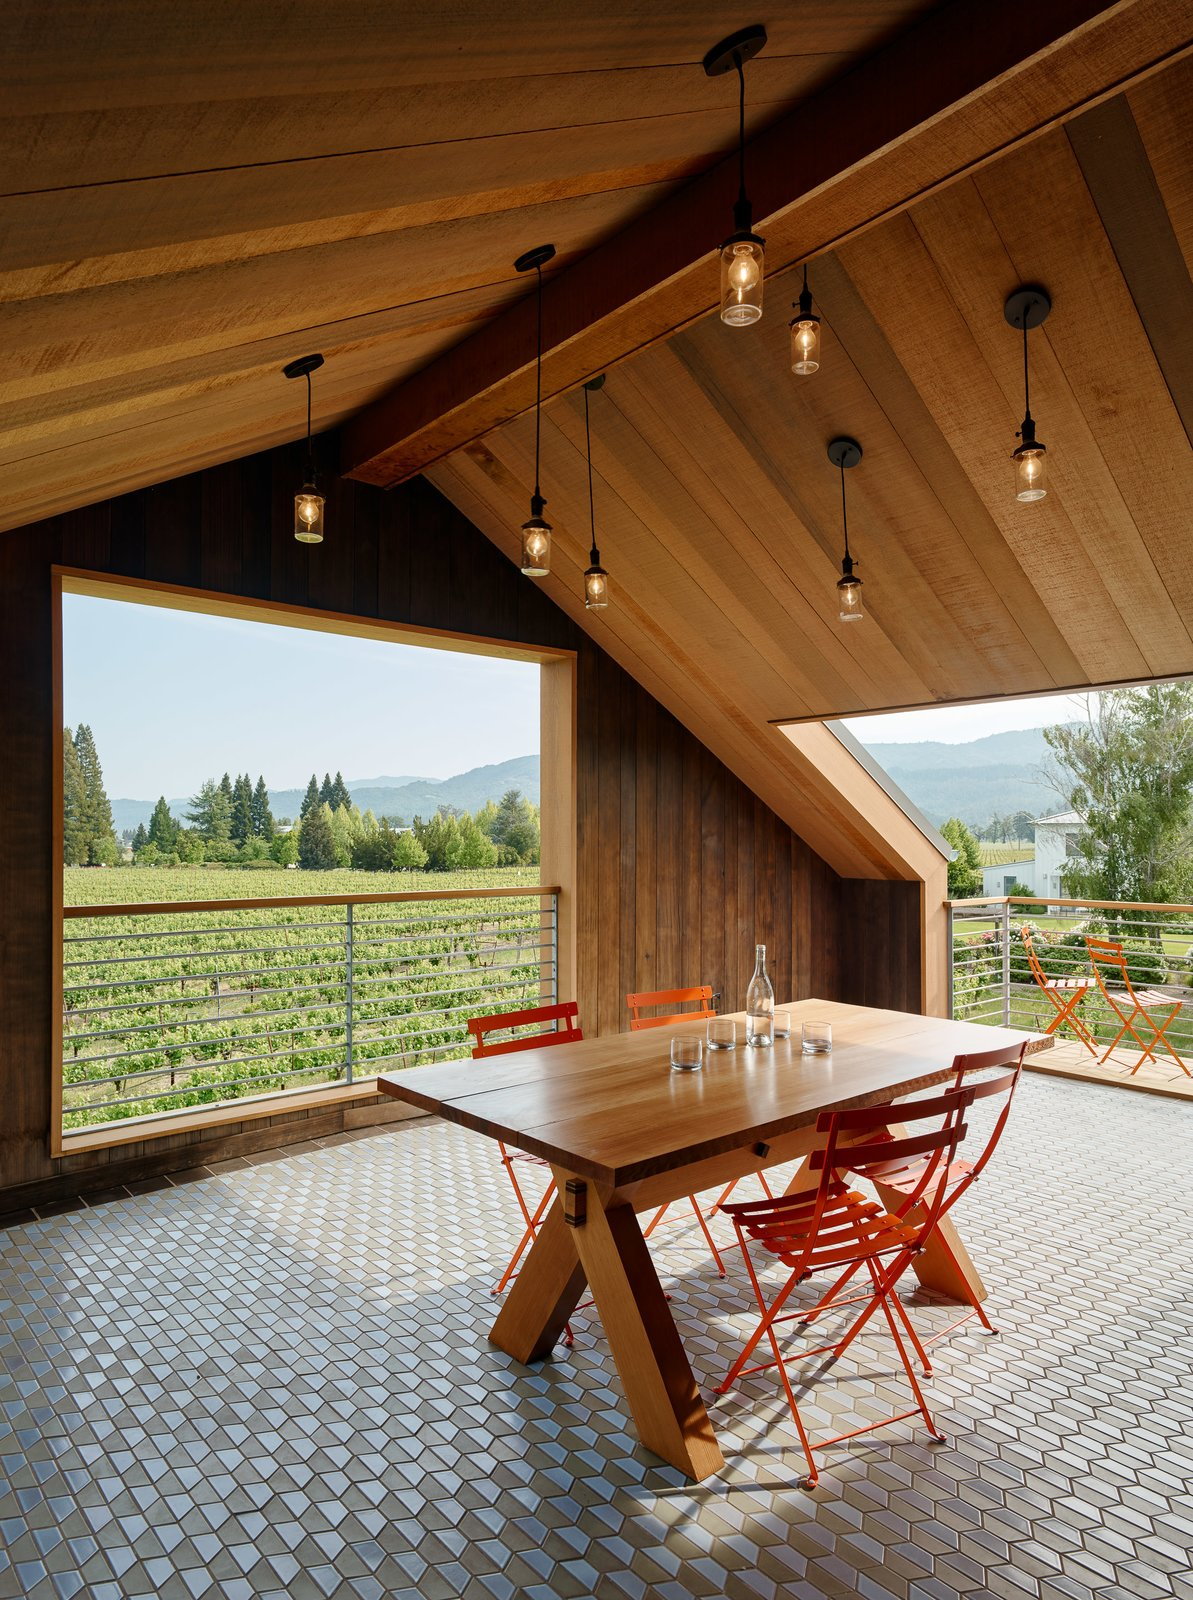 Napa Barn by anderson architects